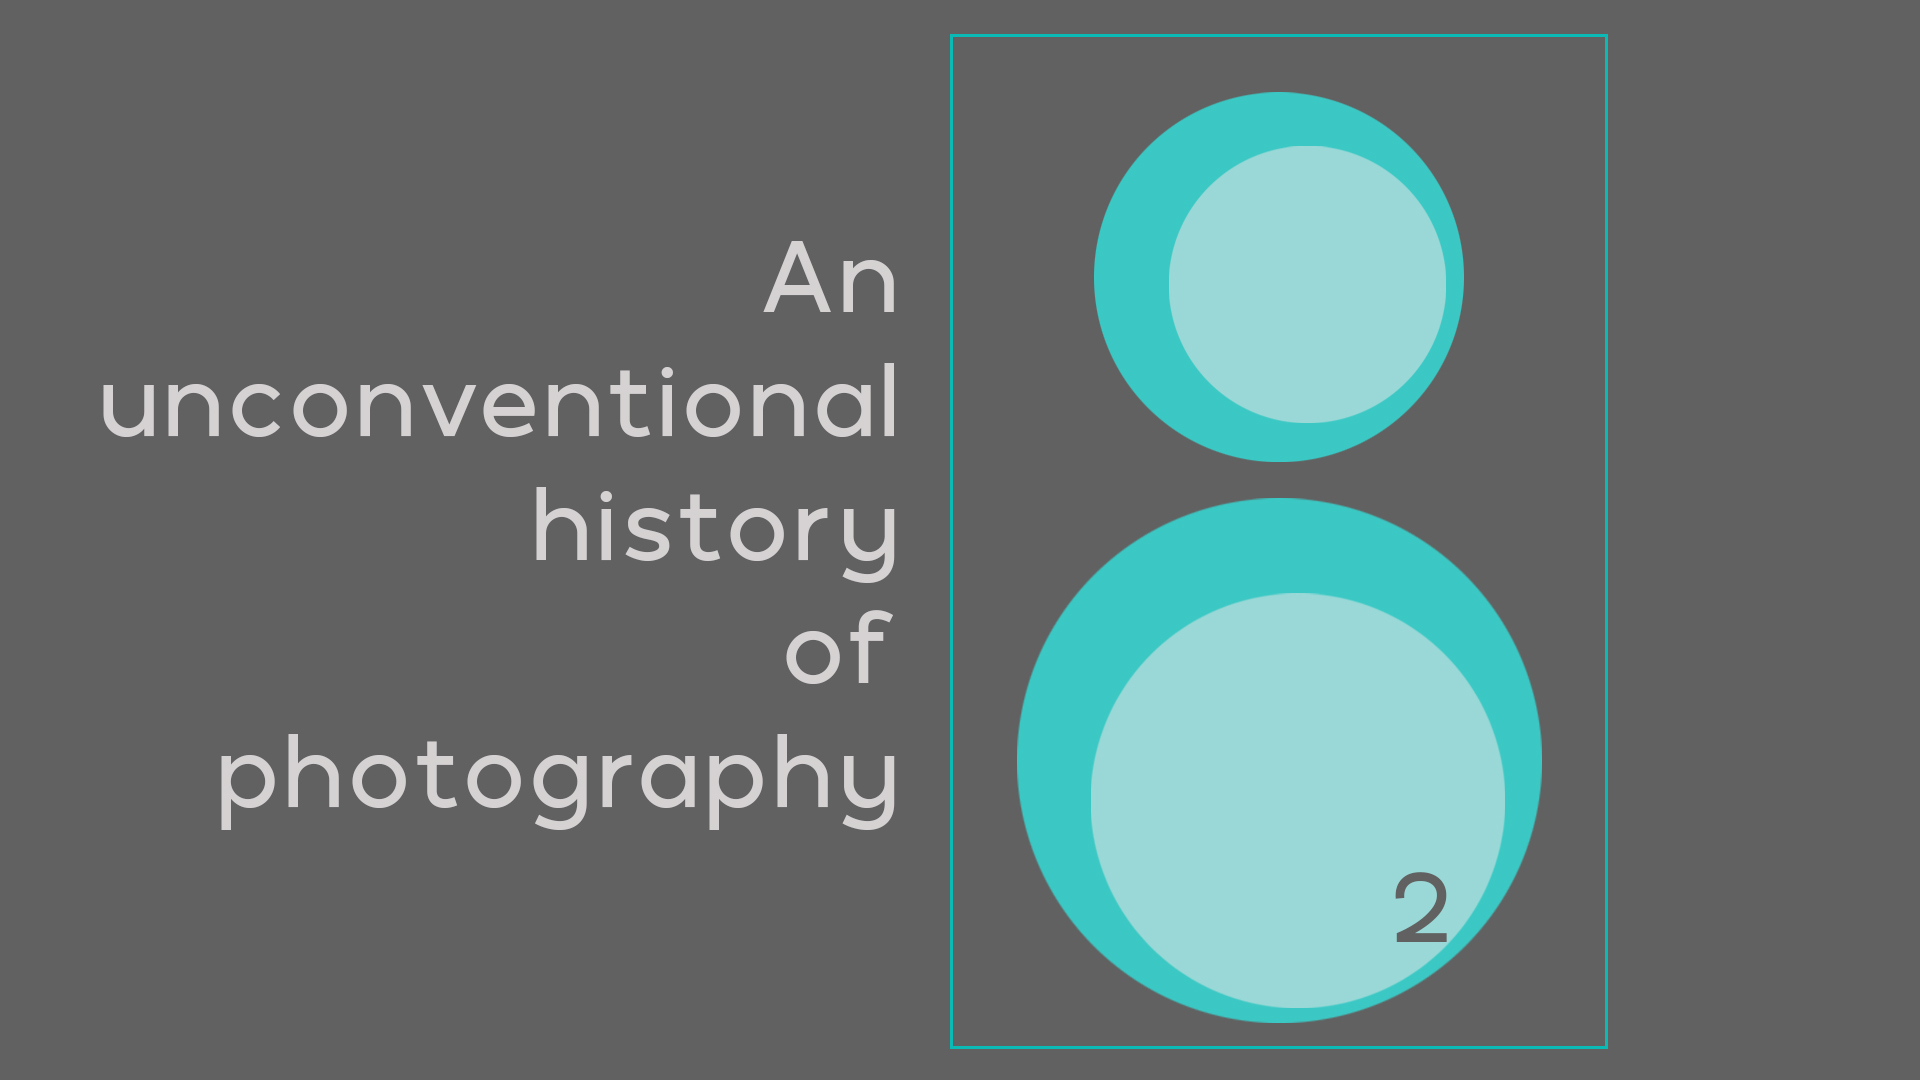 An unconventional history of photography, Loomen Studio, Roma